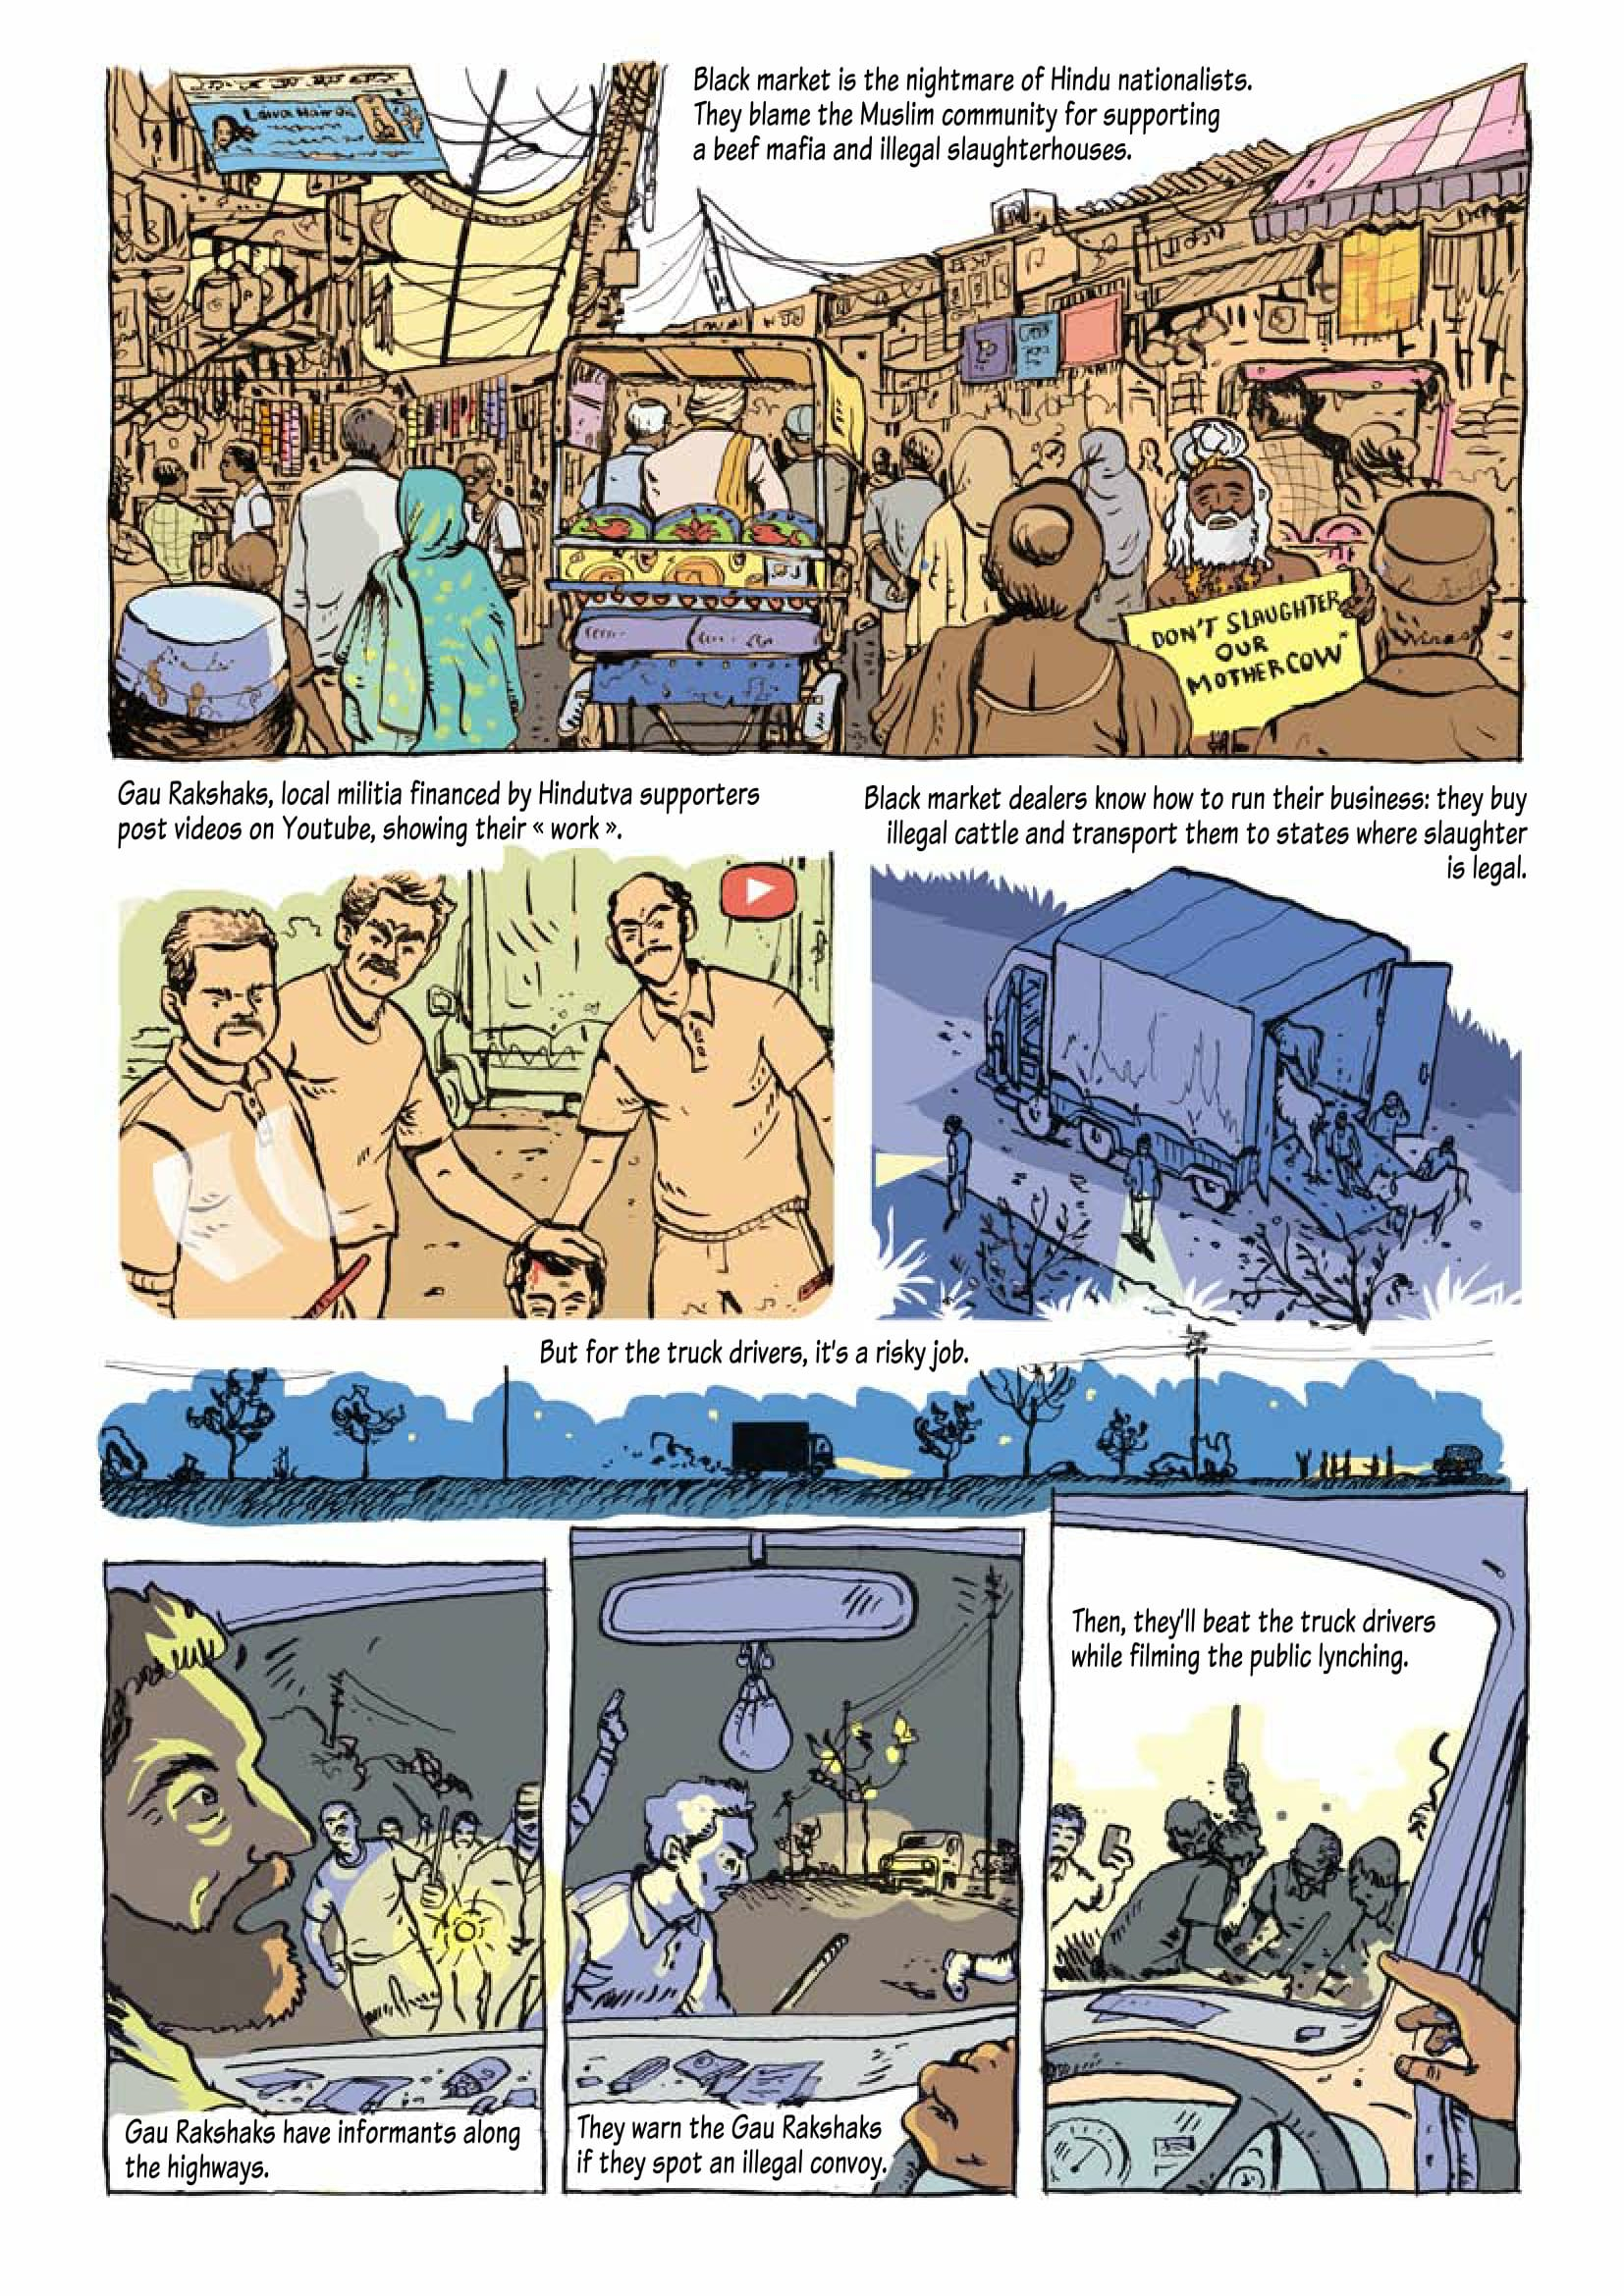 A French comic book illustrates Hindutva's war on beef and its